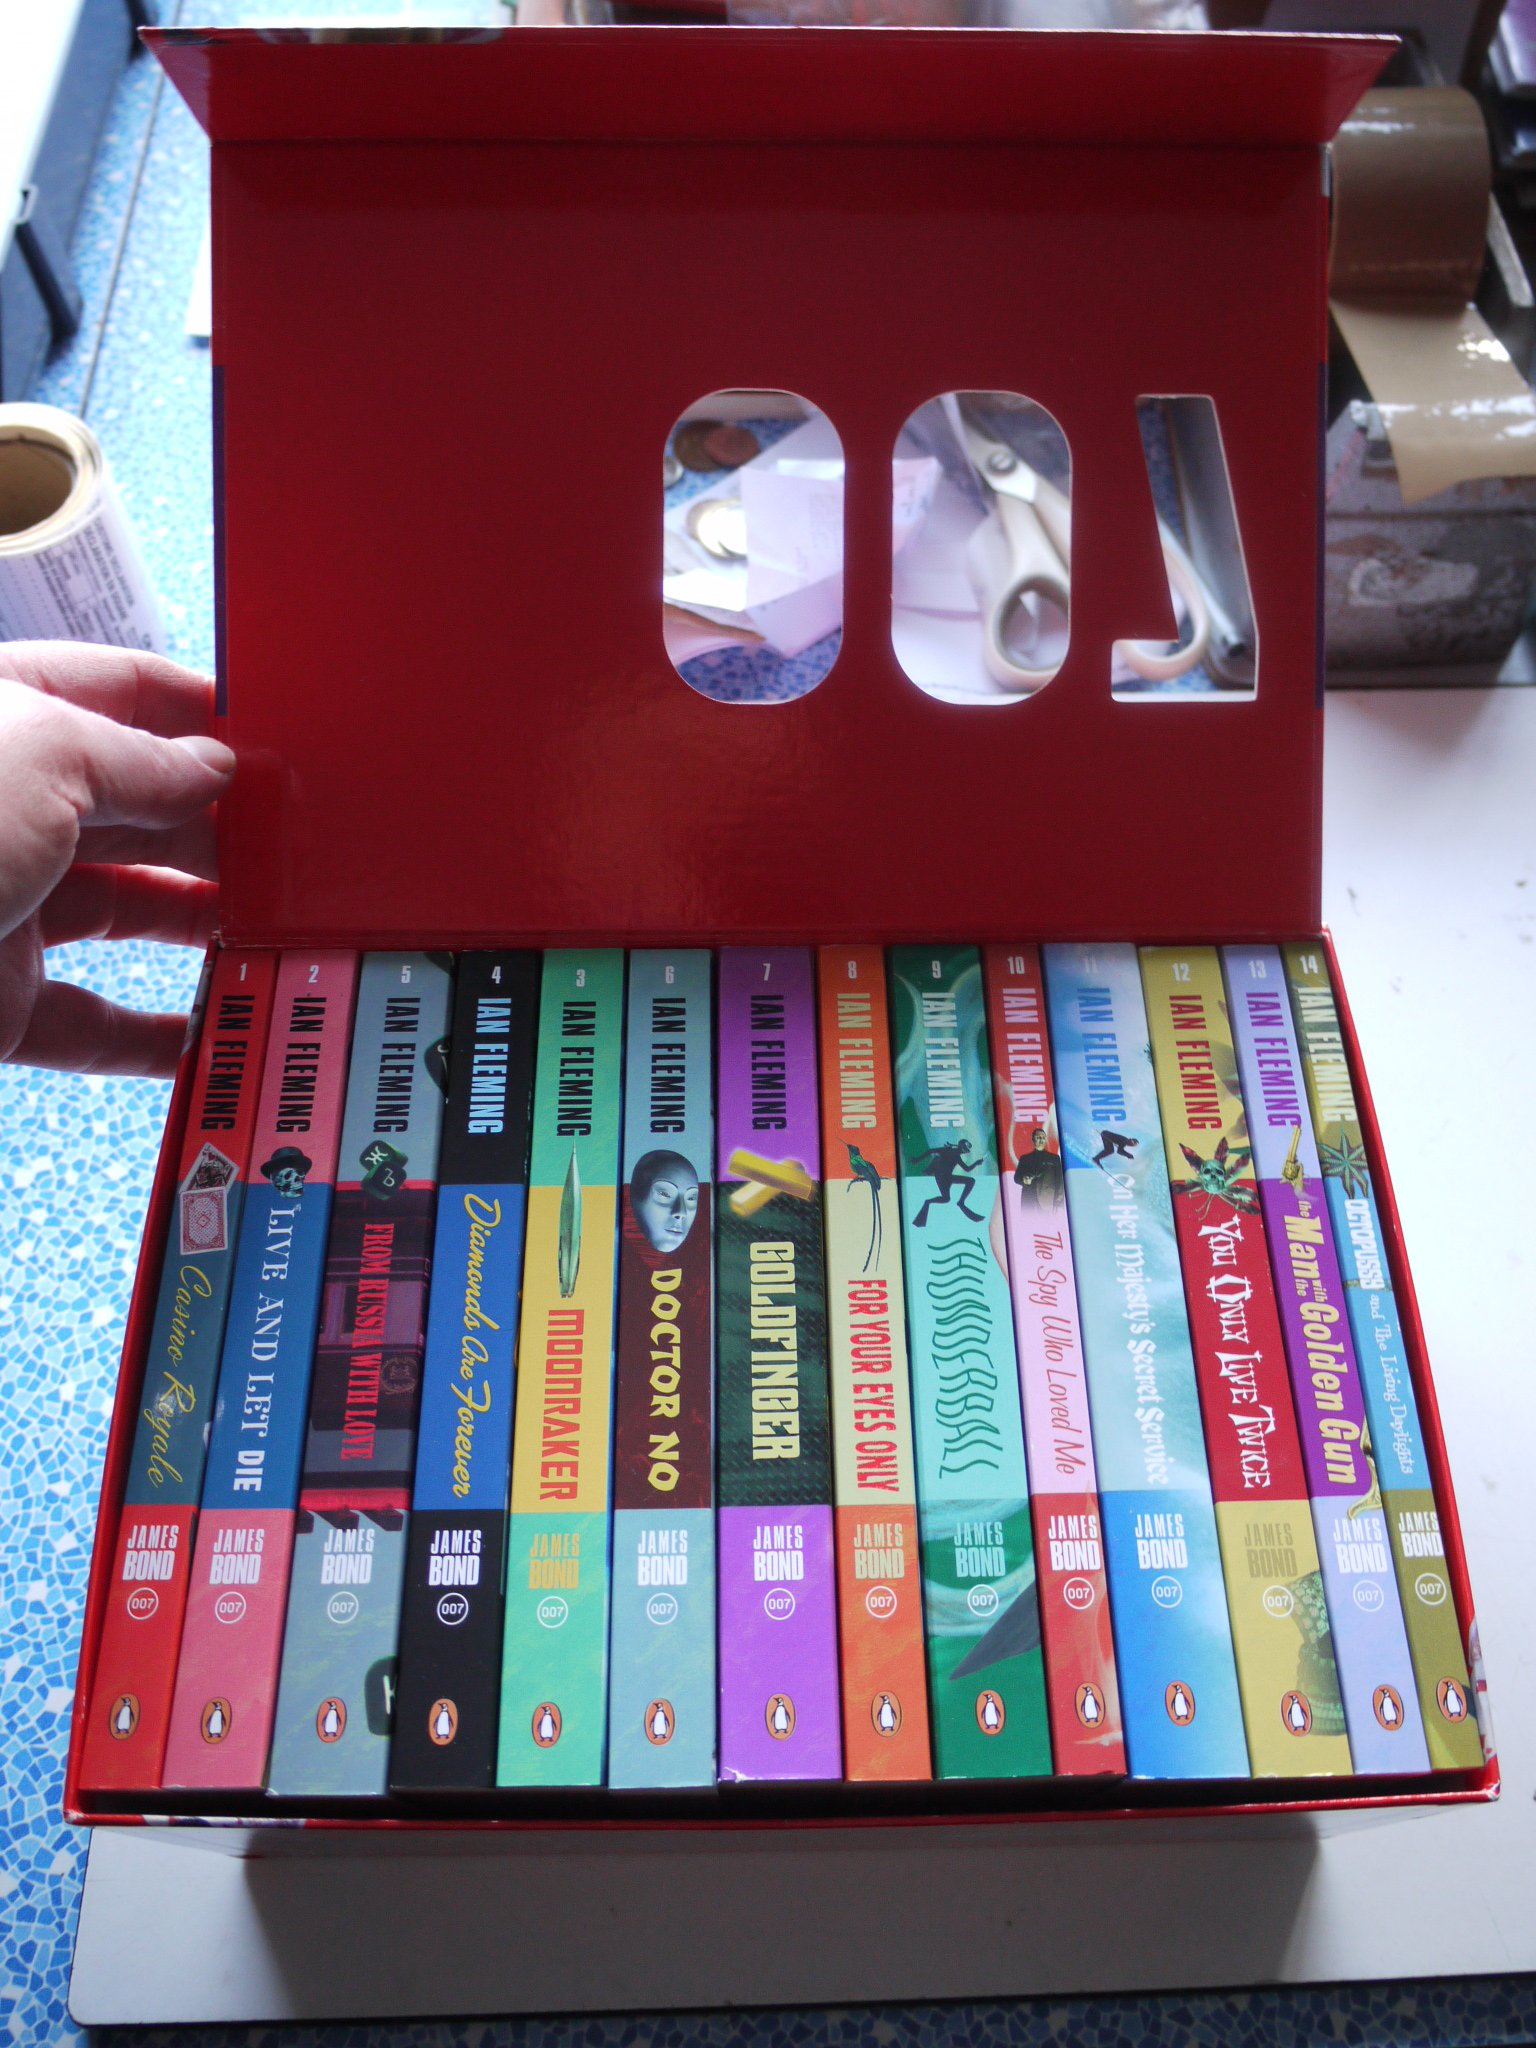 Amazon.fr - THE PENGUIN 007 COLLECTION all 14 JAMES BOND books in a nice  box - IAN FLEMING - Livres